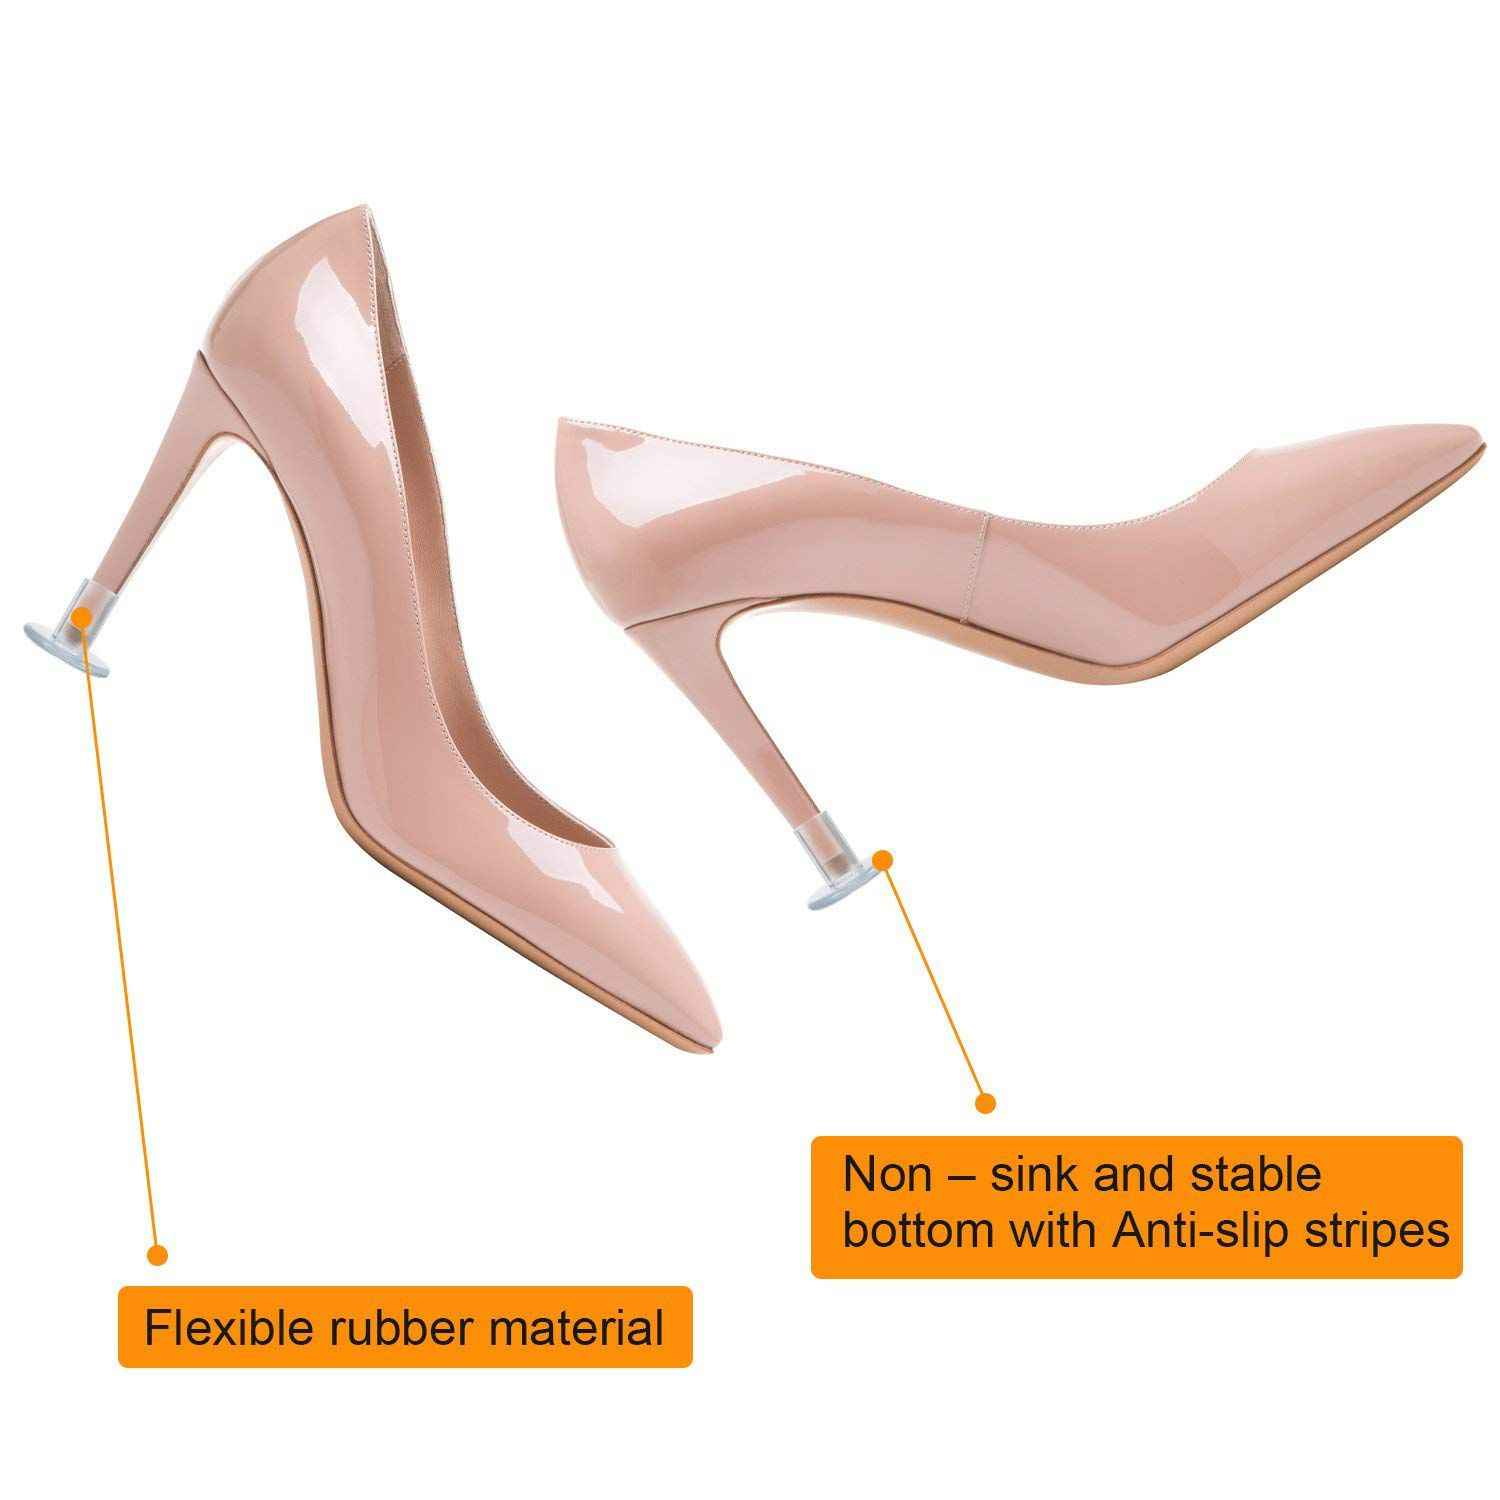 99892a68d14 24 Pairs High Heel Protectors Clear Heel Stoppers for Wedding or Outdoor  Events high heel protectors for walking on grass